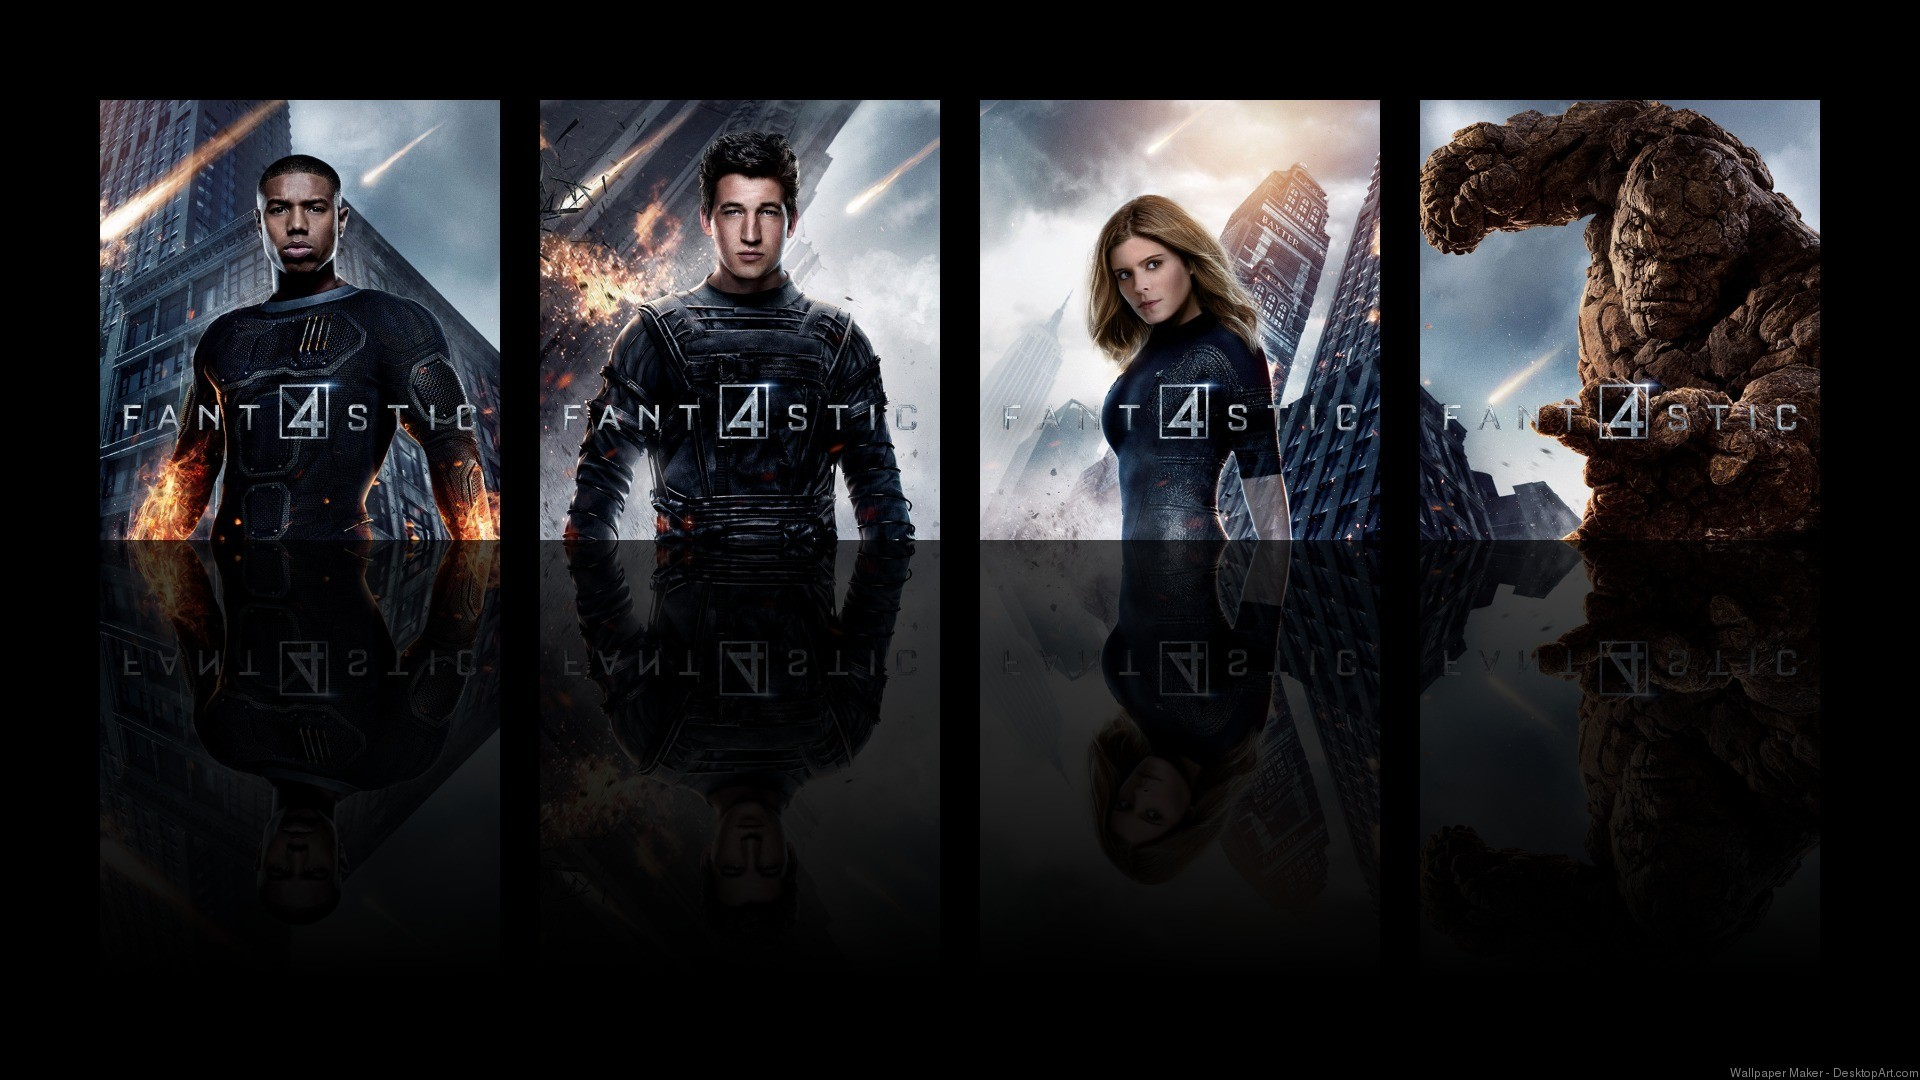 1920x1080 Fantastic Four Wallpapers, Fantastic Four HDQ Images